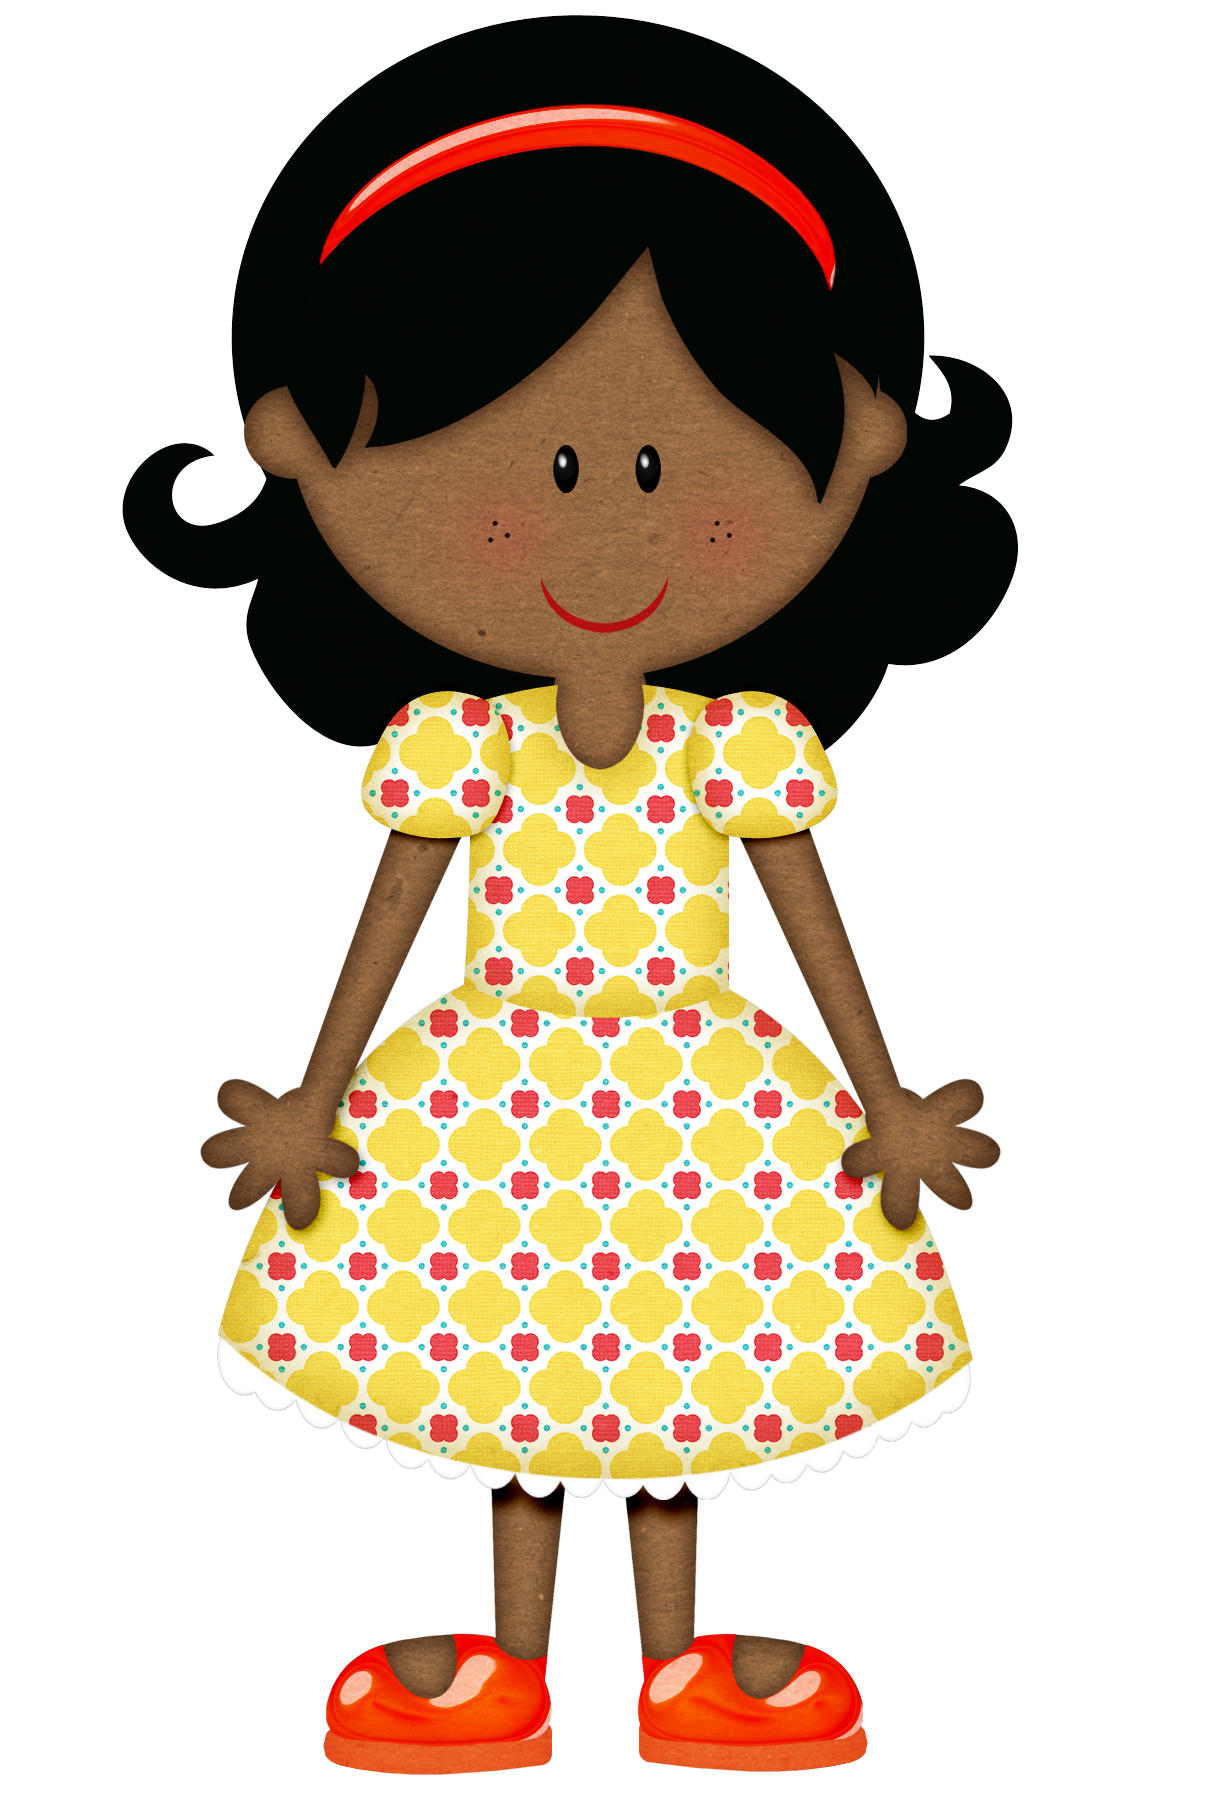 Photo by selmabuenoaltran minus. Pajamas clipart flannel